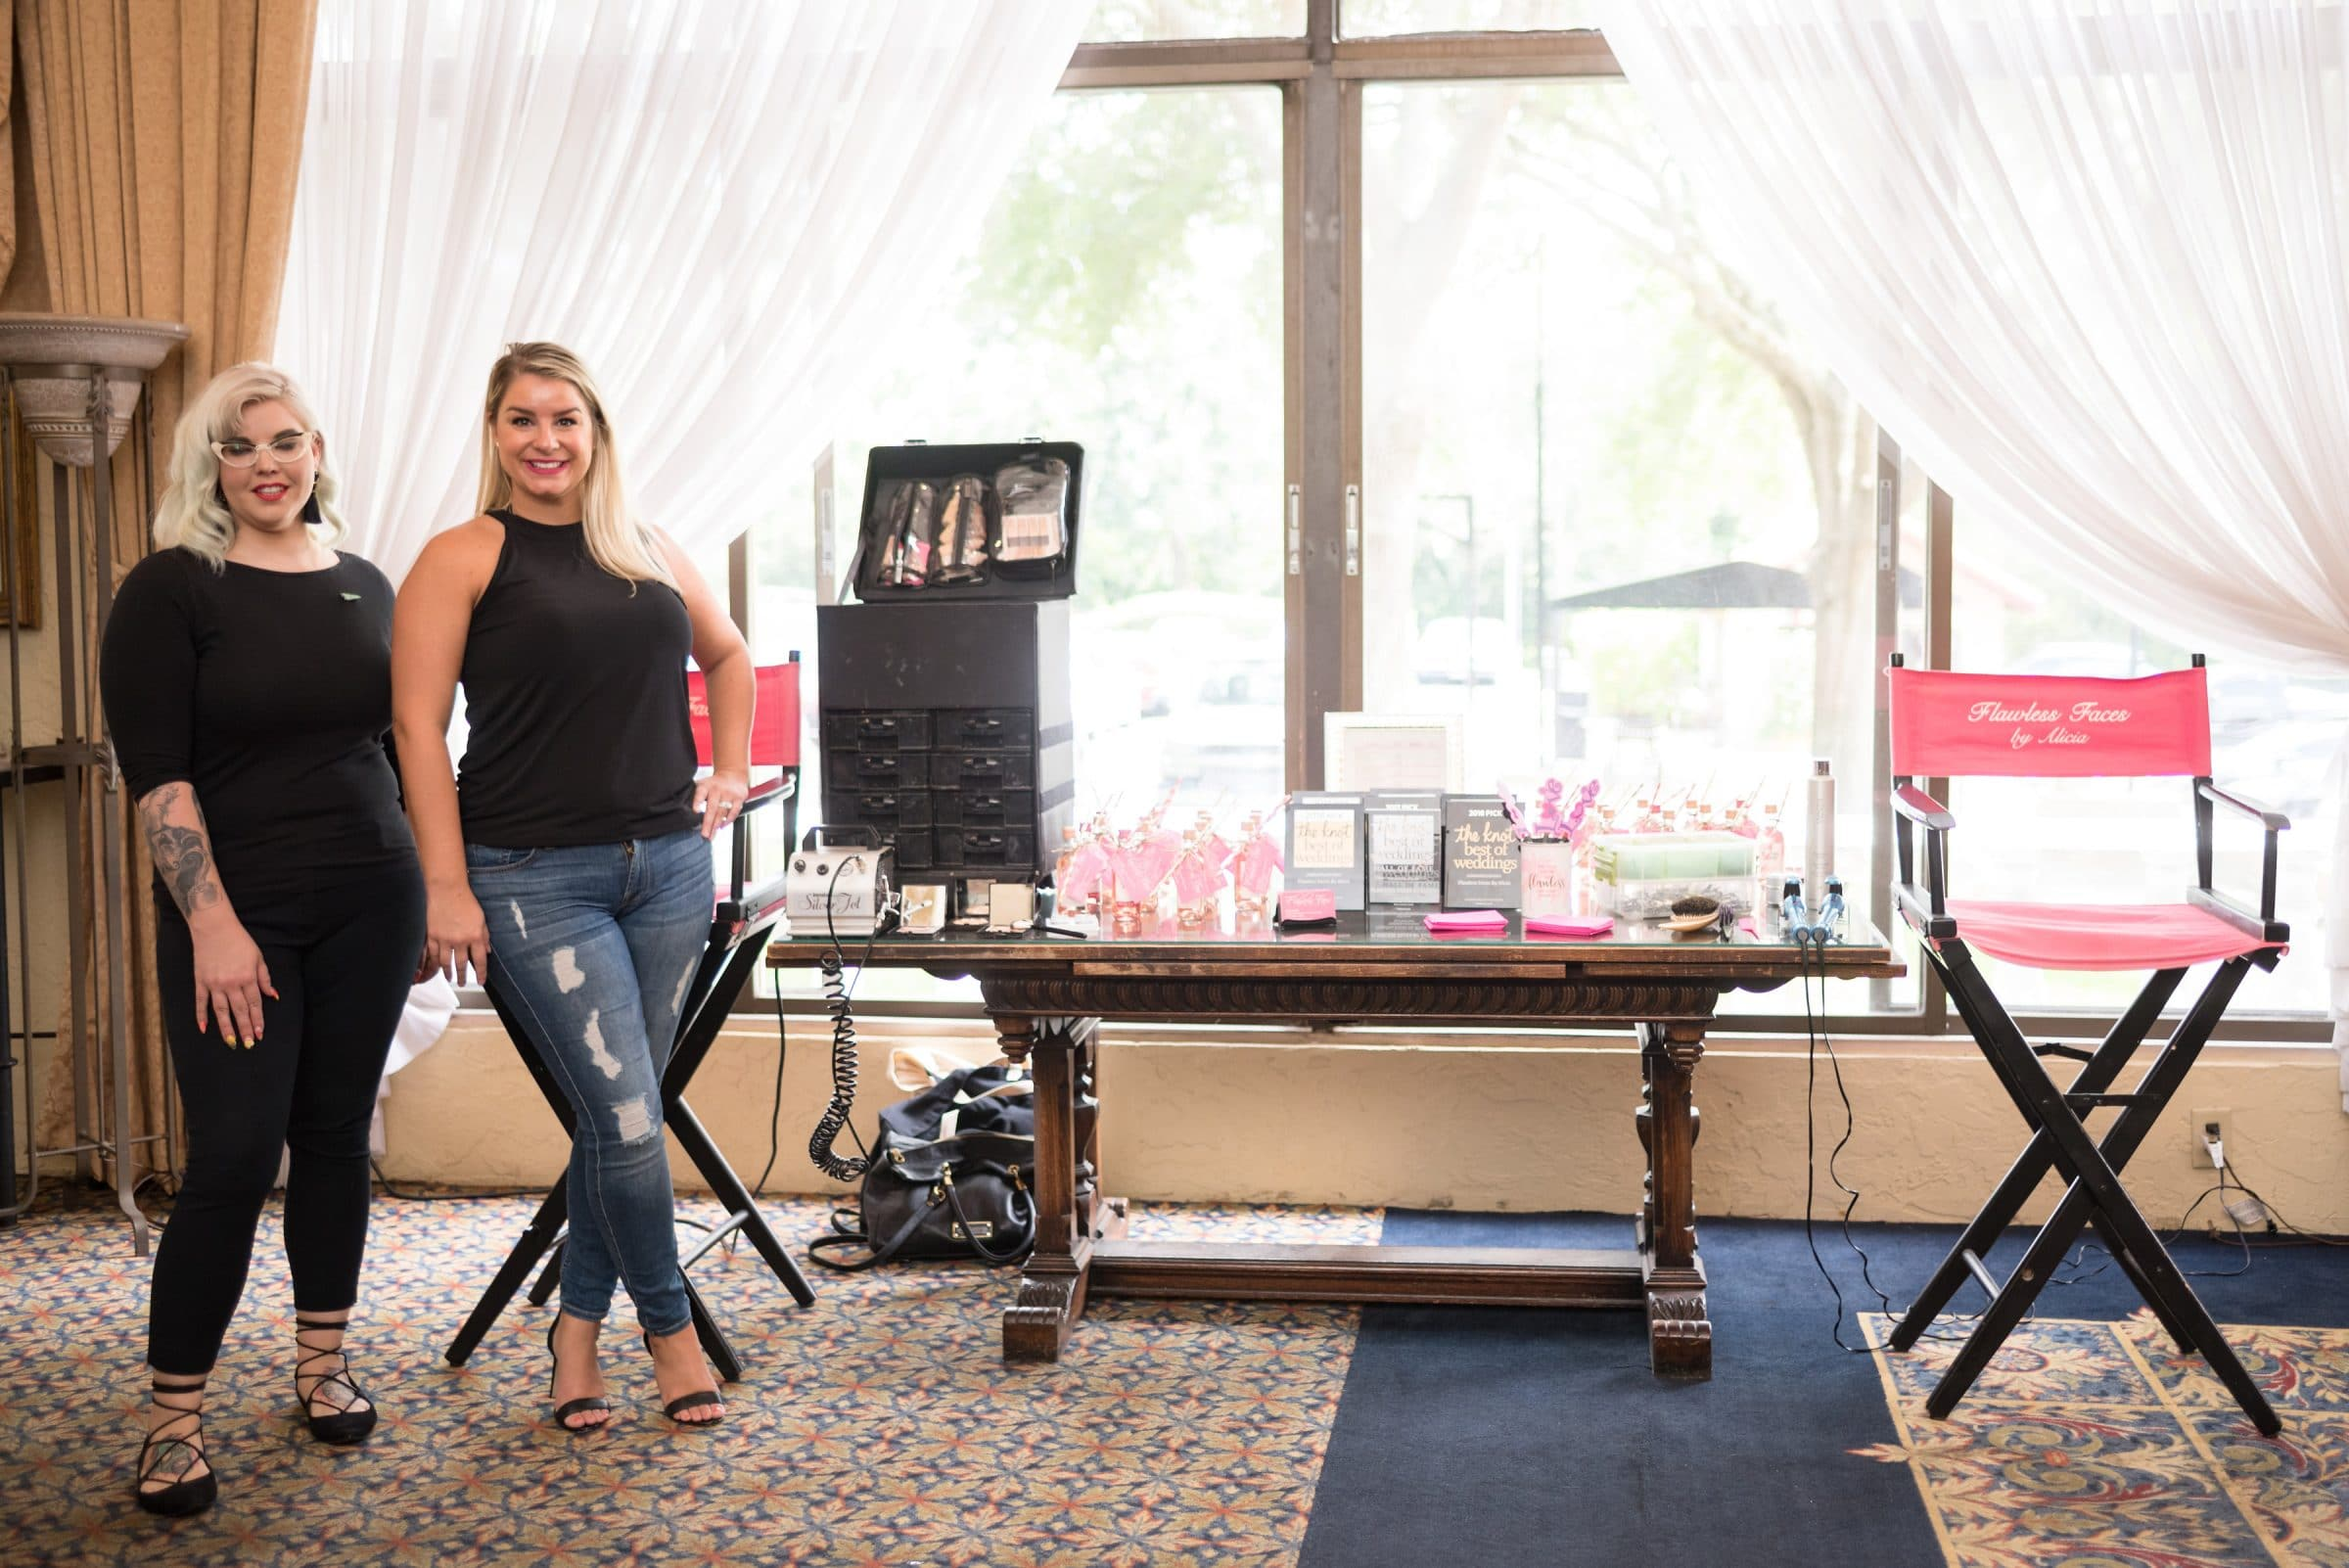 Makeup Artist standing in front of table with makeup and bottles of champagne